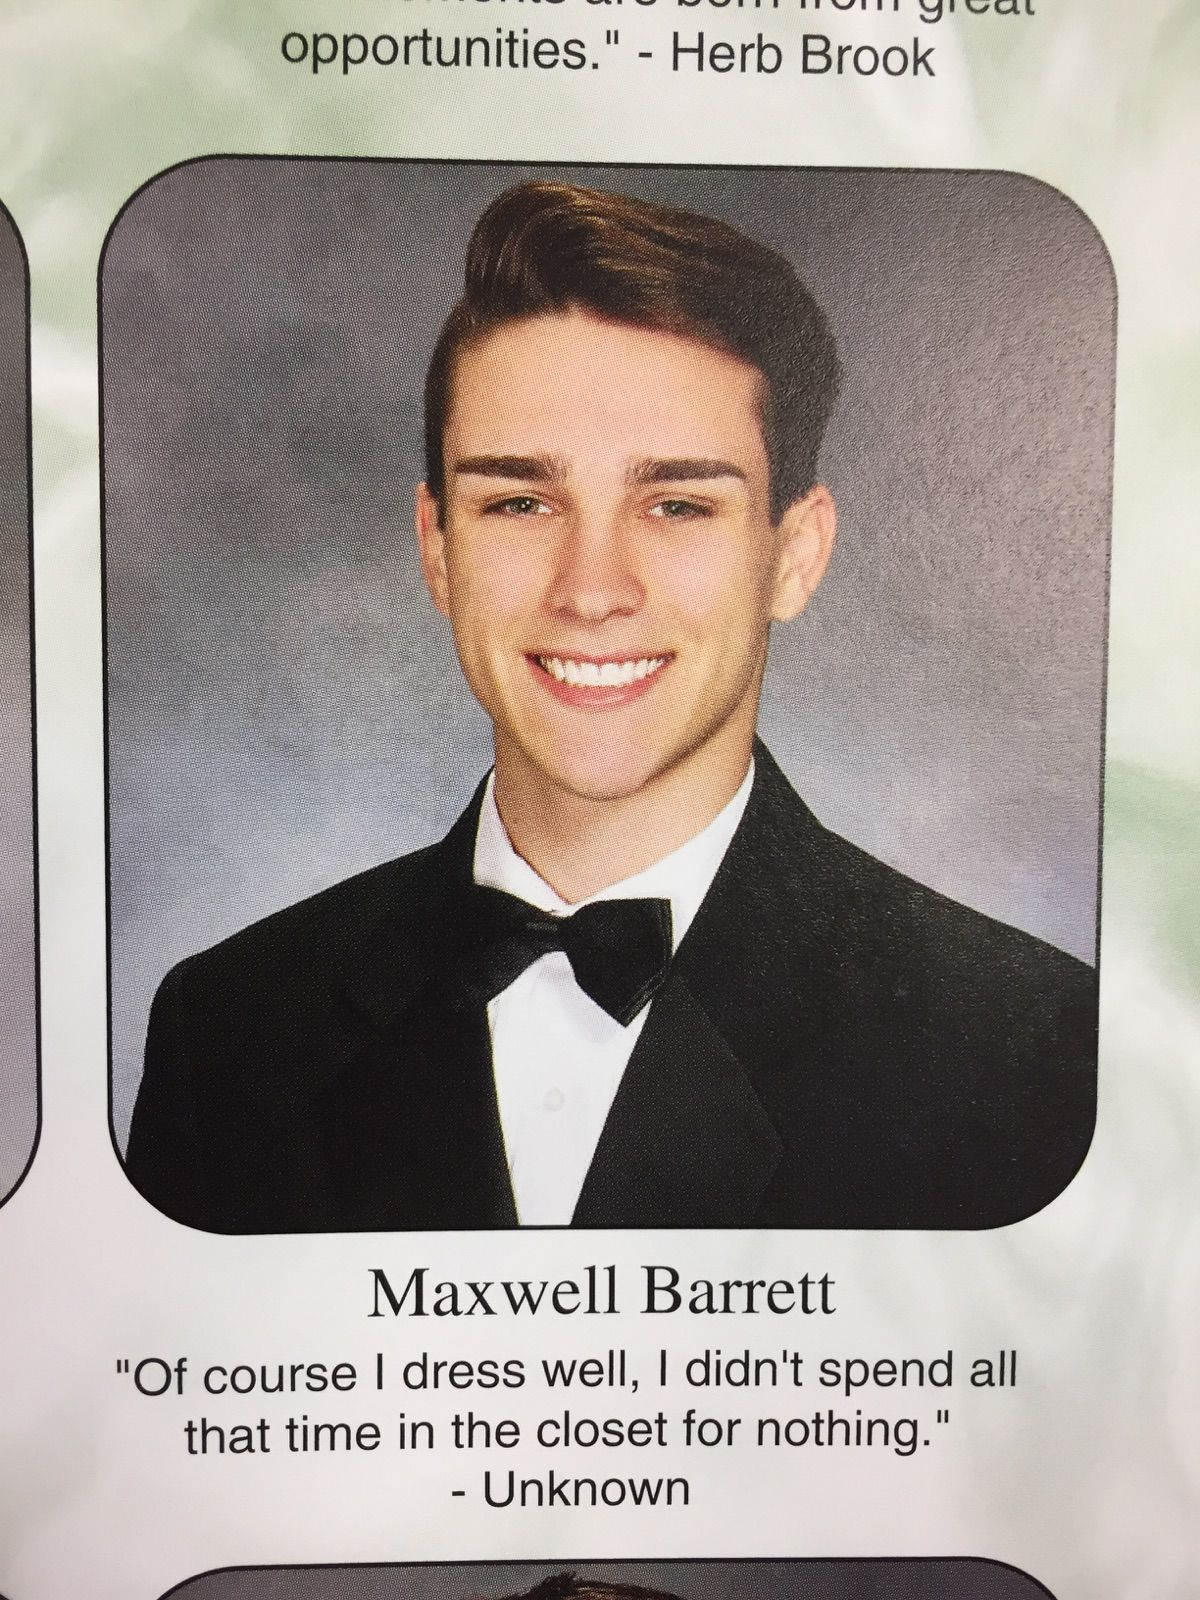 Senior Yearbook Quotes This Guy Made A Stunning Confession In His Senior Yearbook Quote .